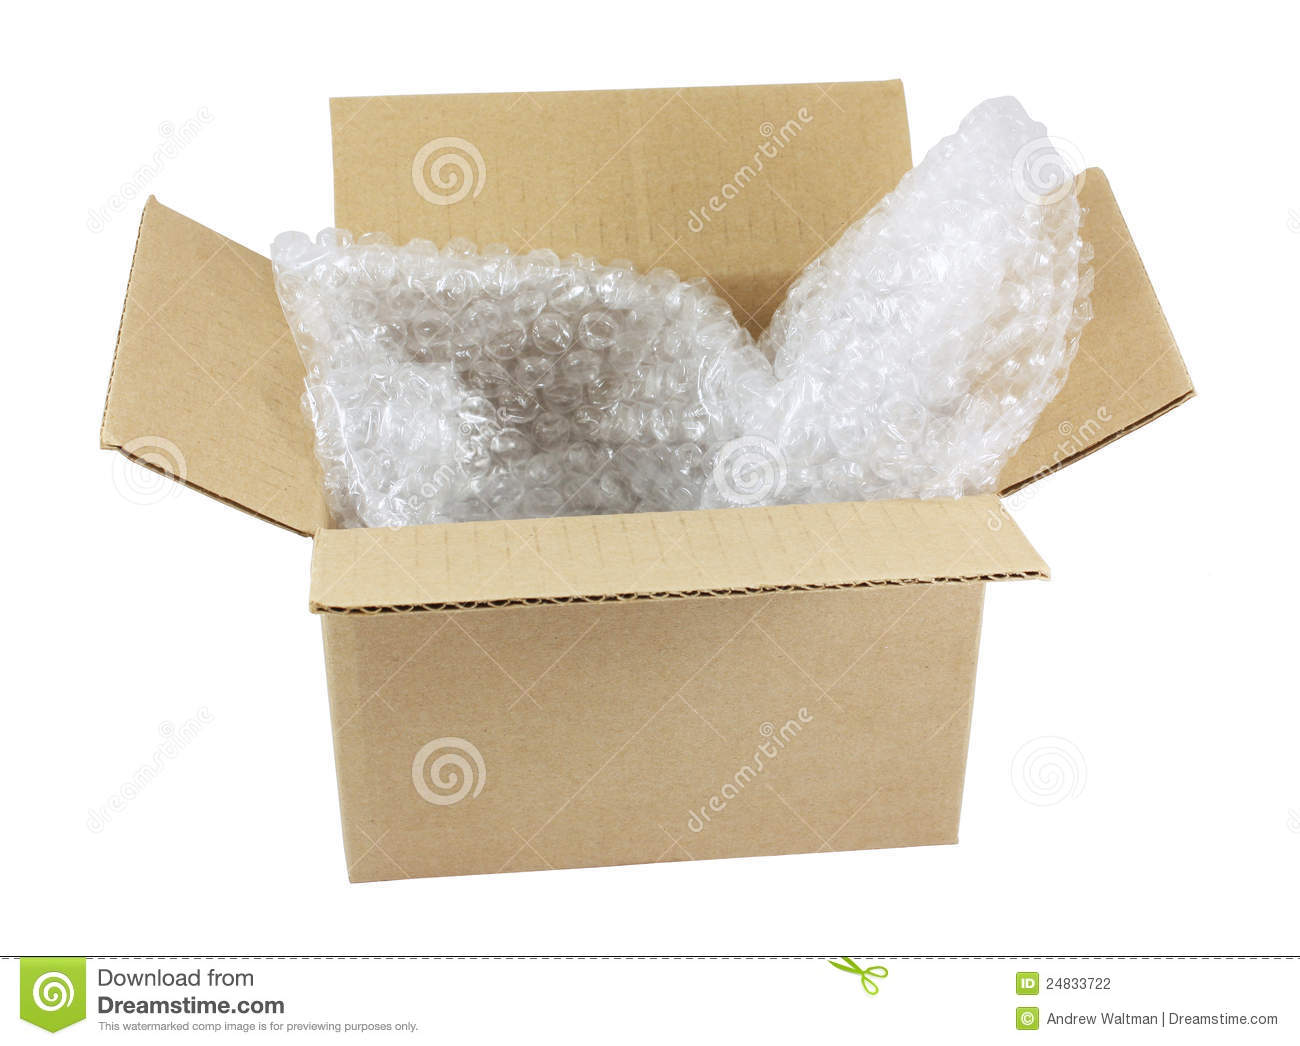 Open box with bubble wrap